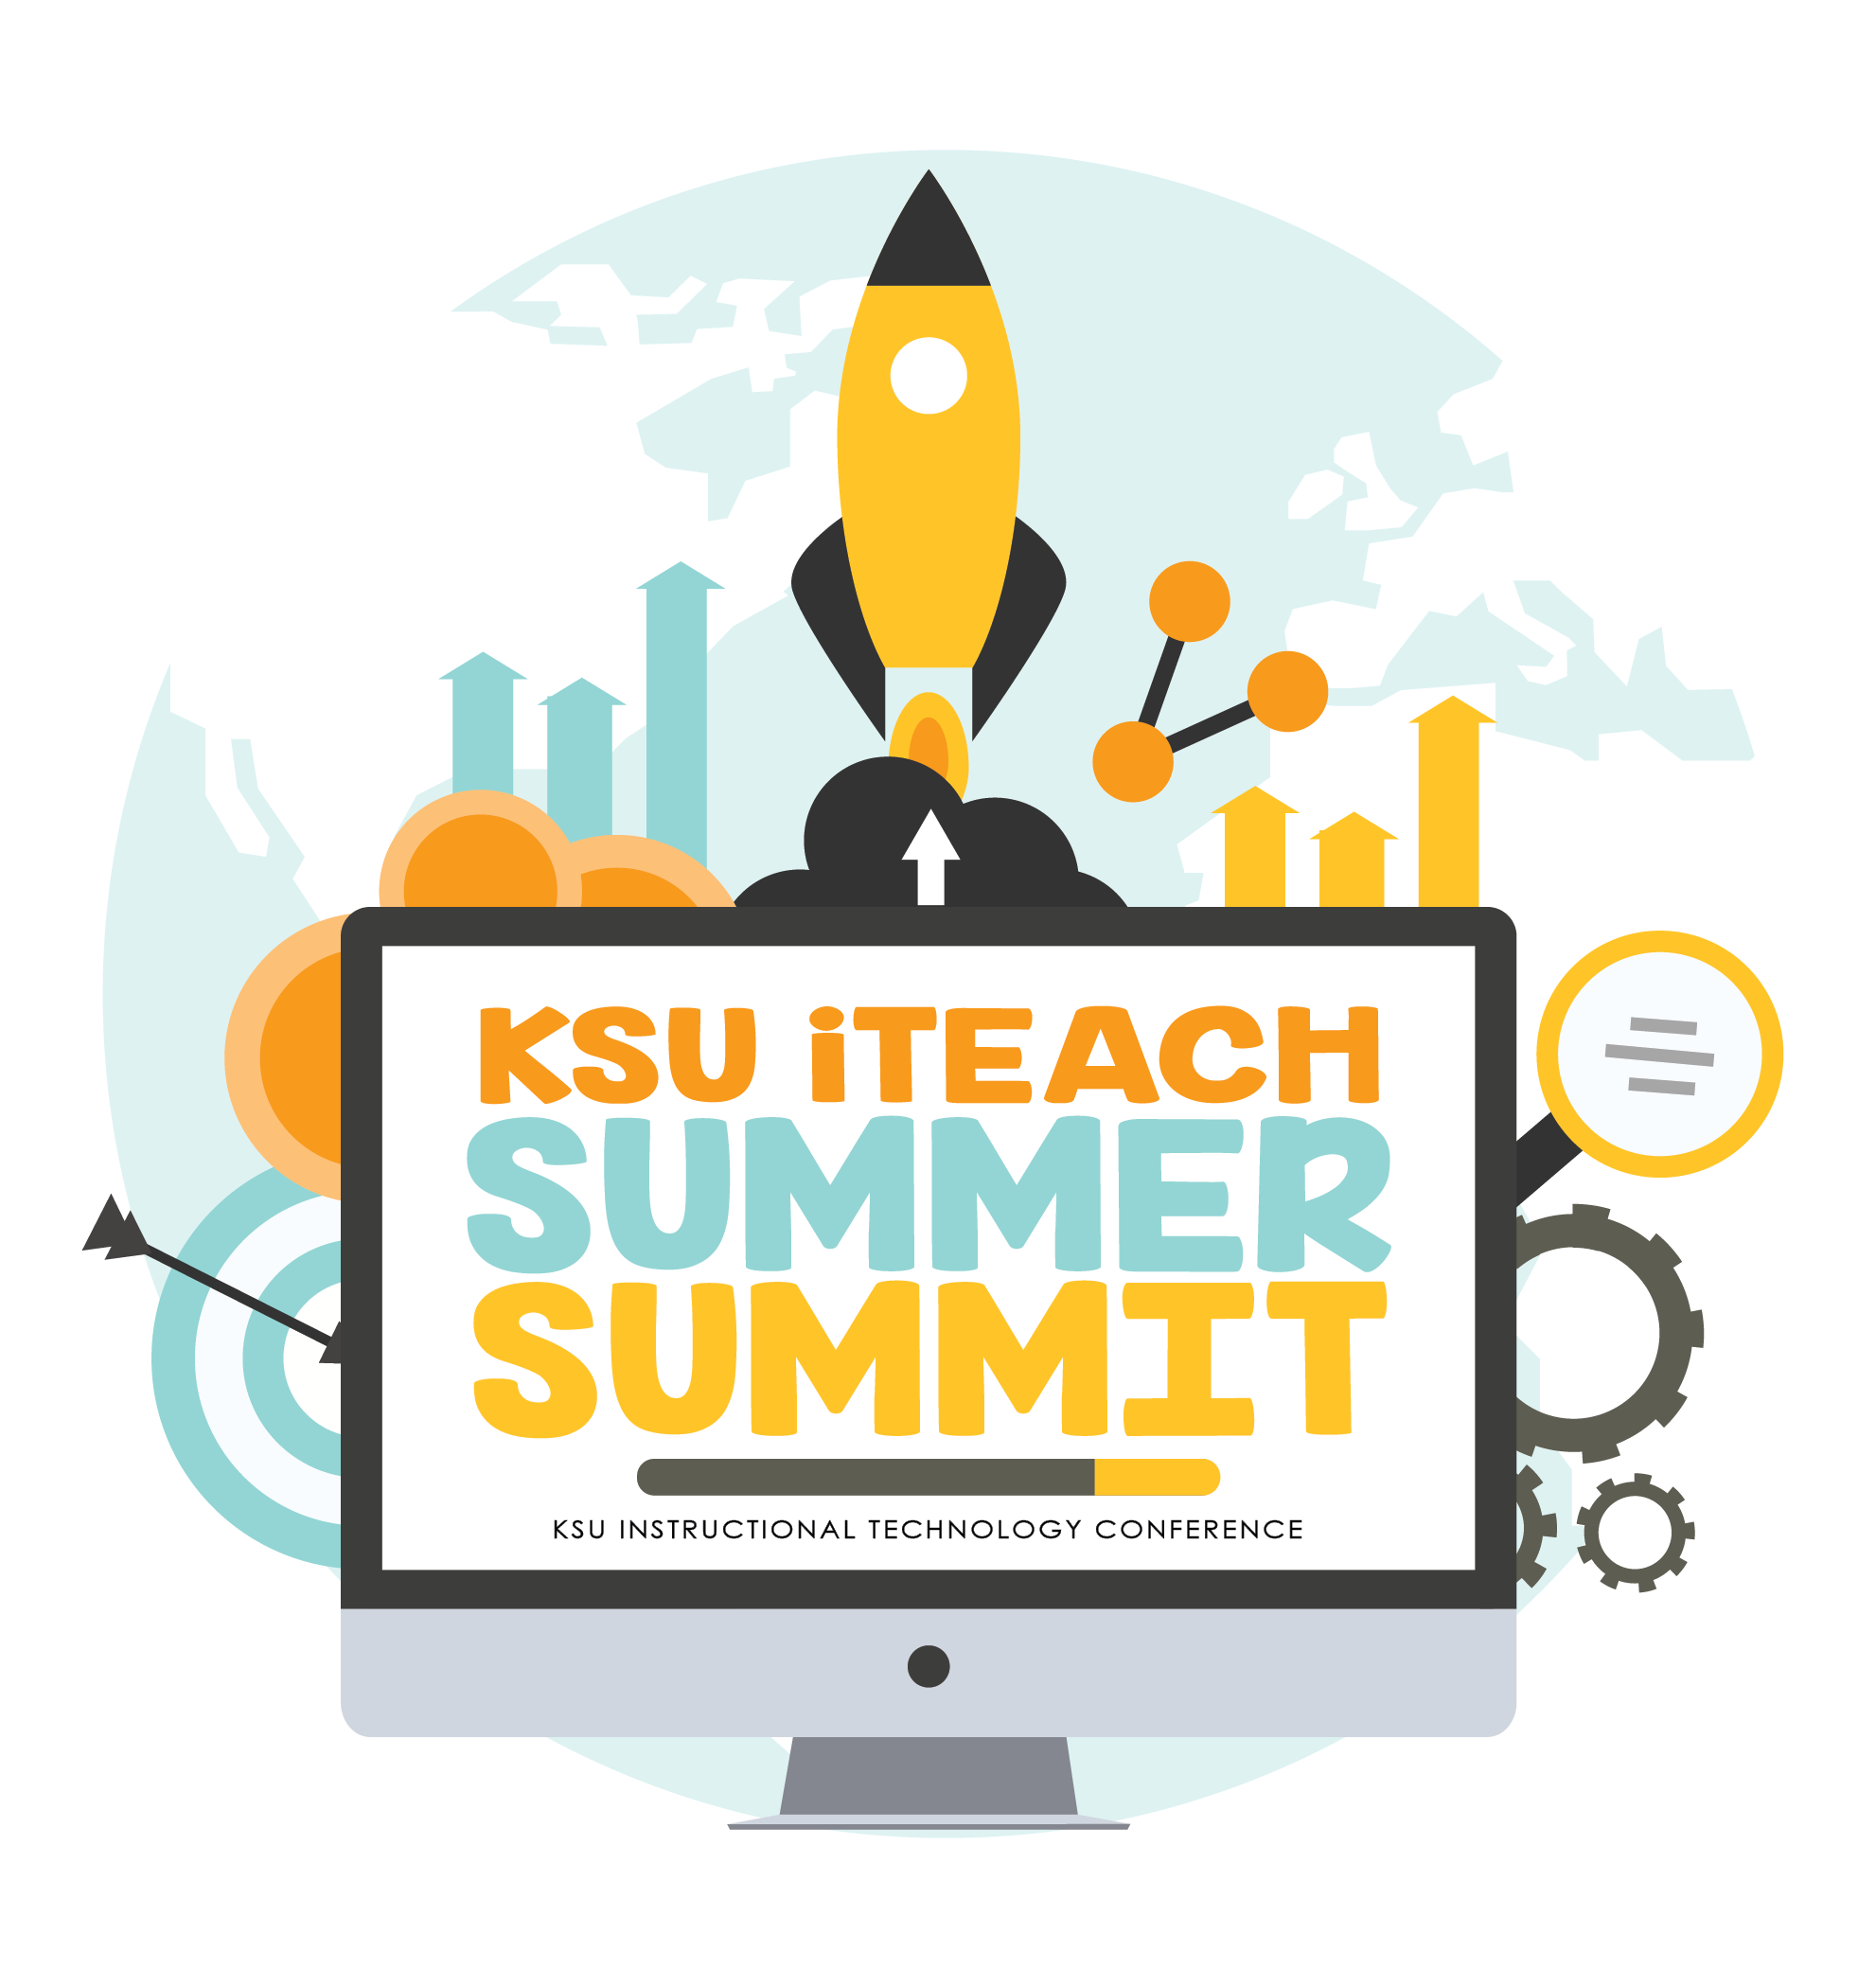 iTeach Summer Summit-01.png